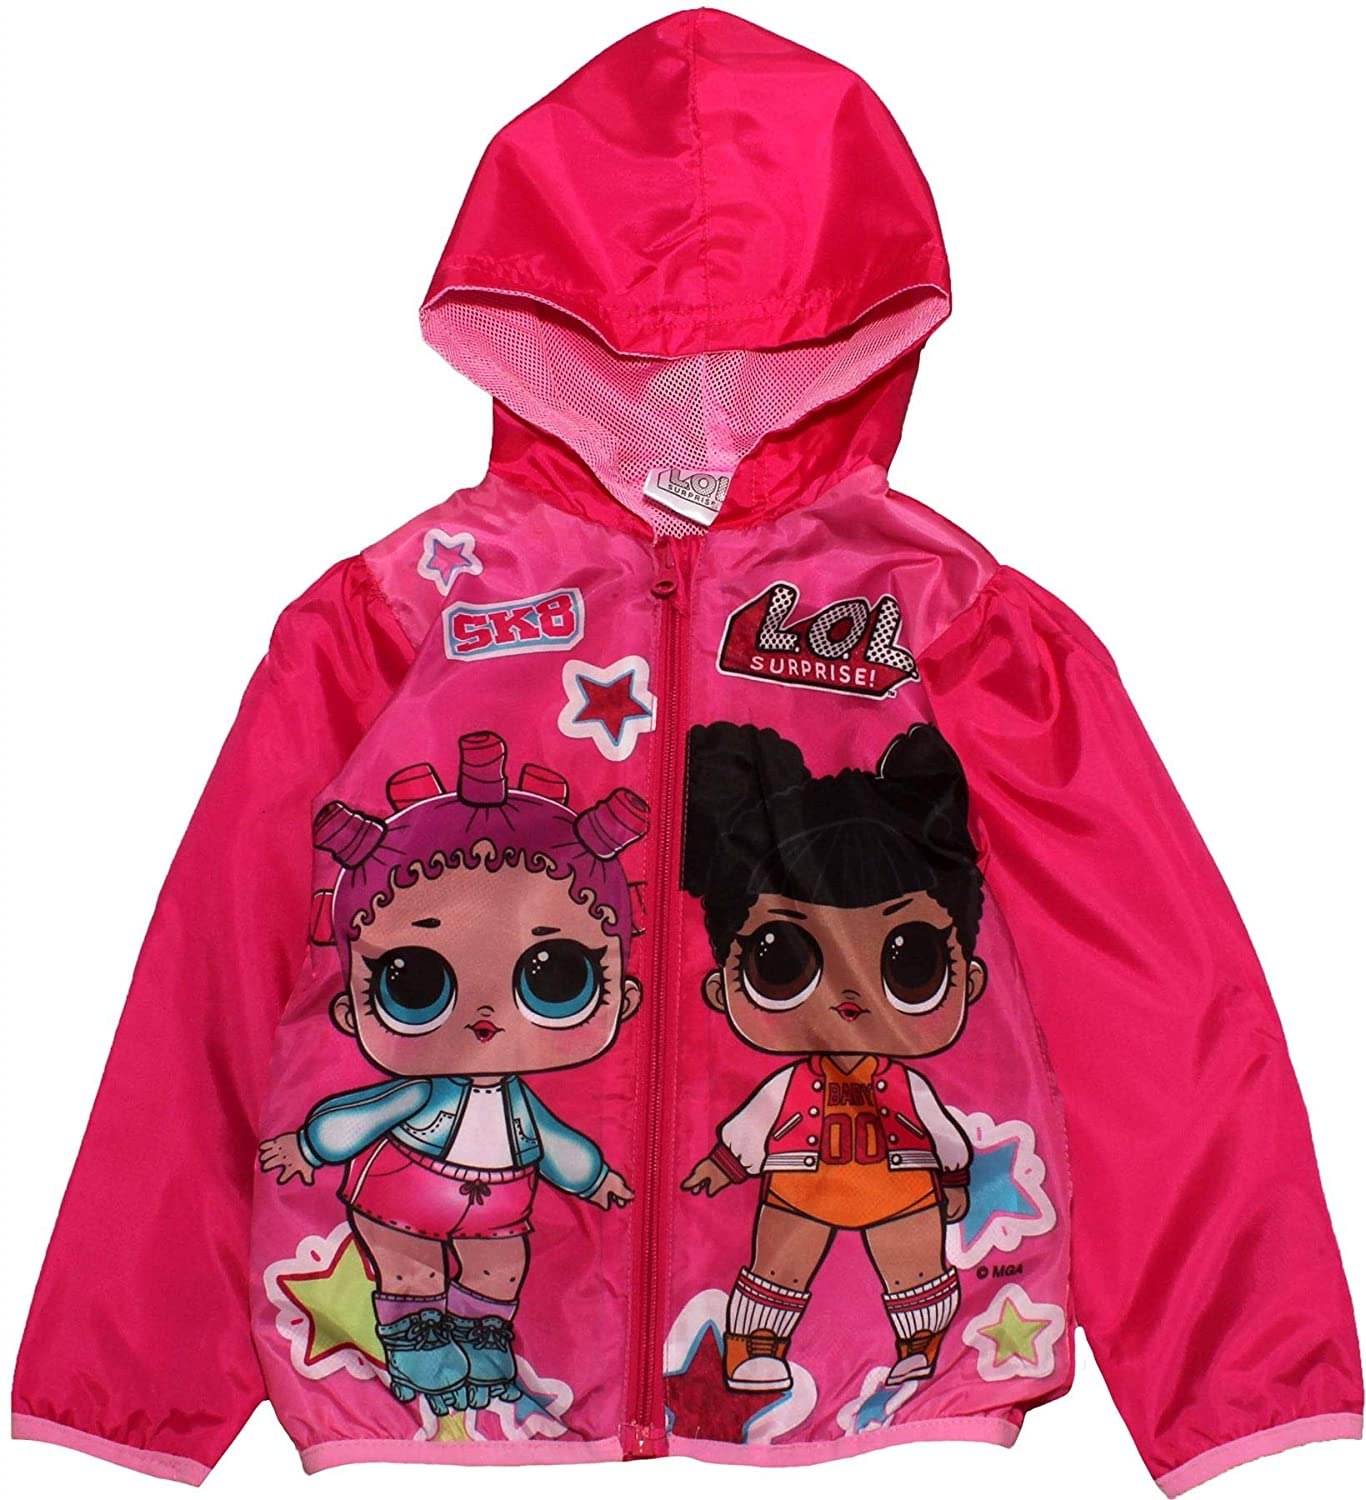 L.O.L Girls Character Themed Hooded Jacket Parka Lightweight Windbreaker Neon Fuchsia Pink 4-10 Years Surprise